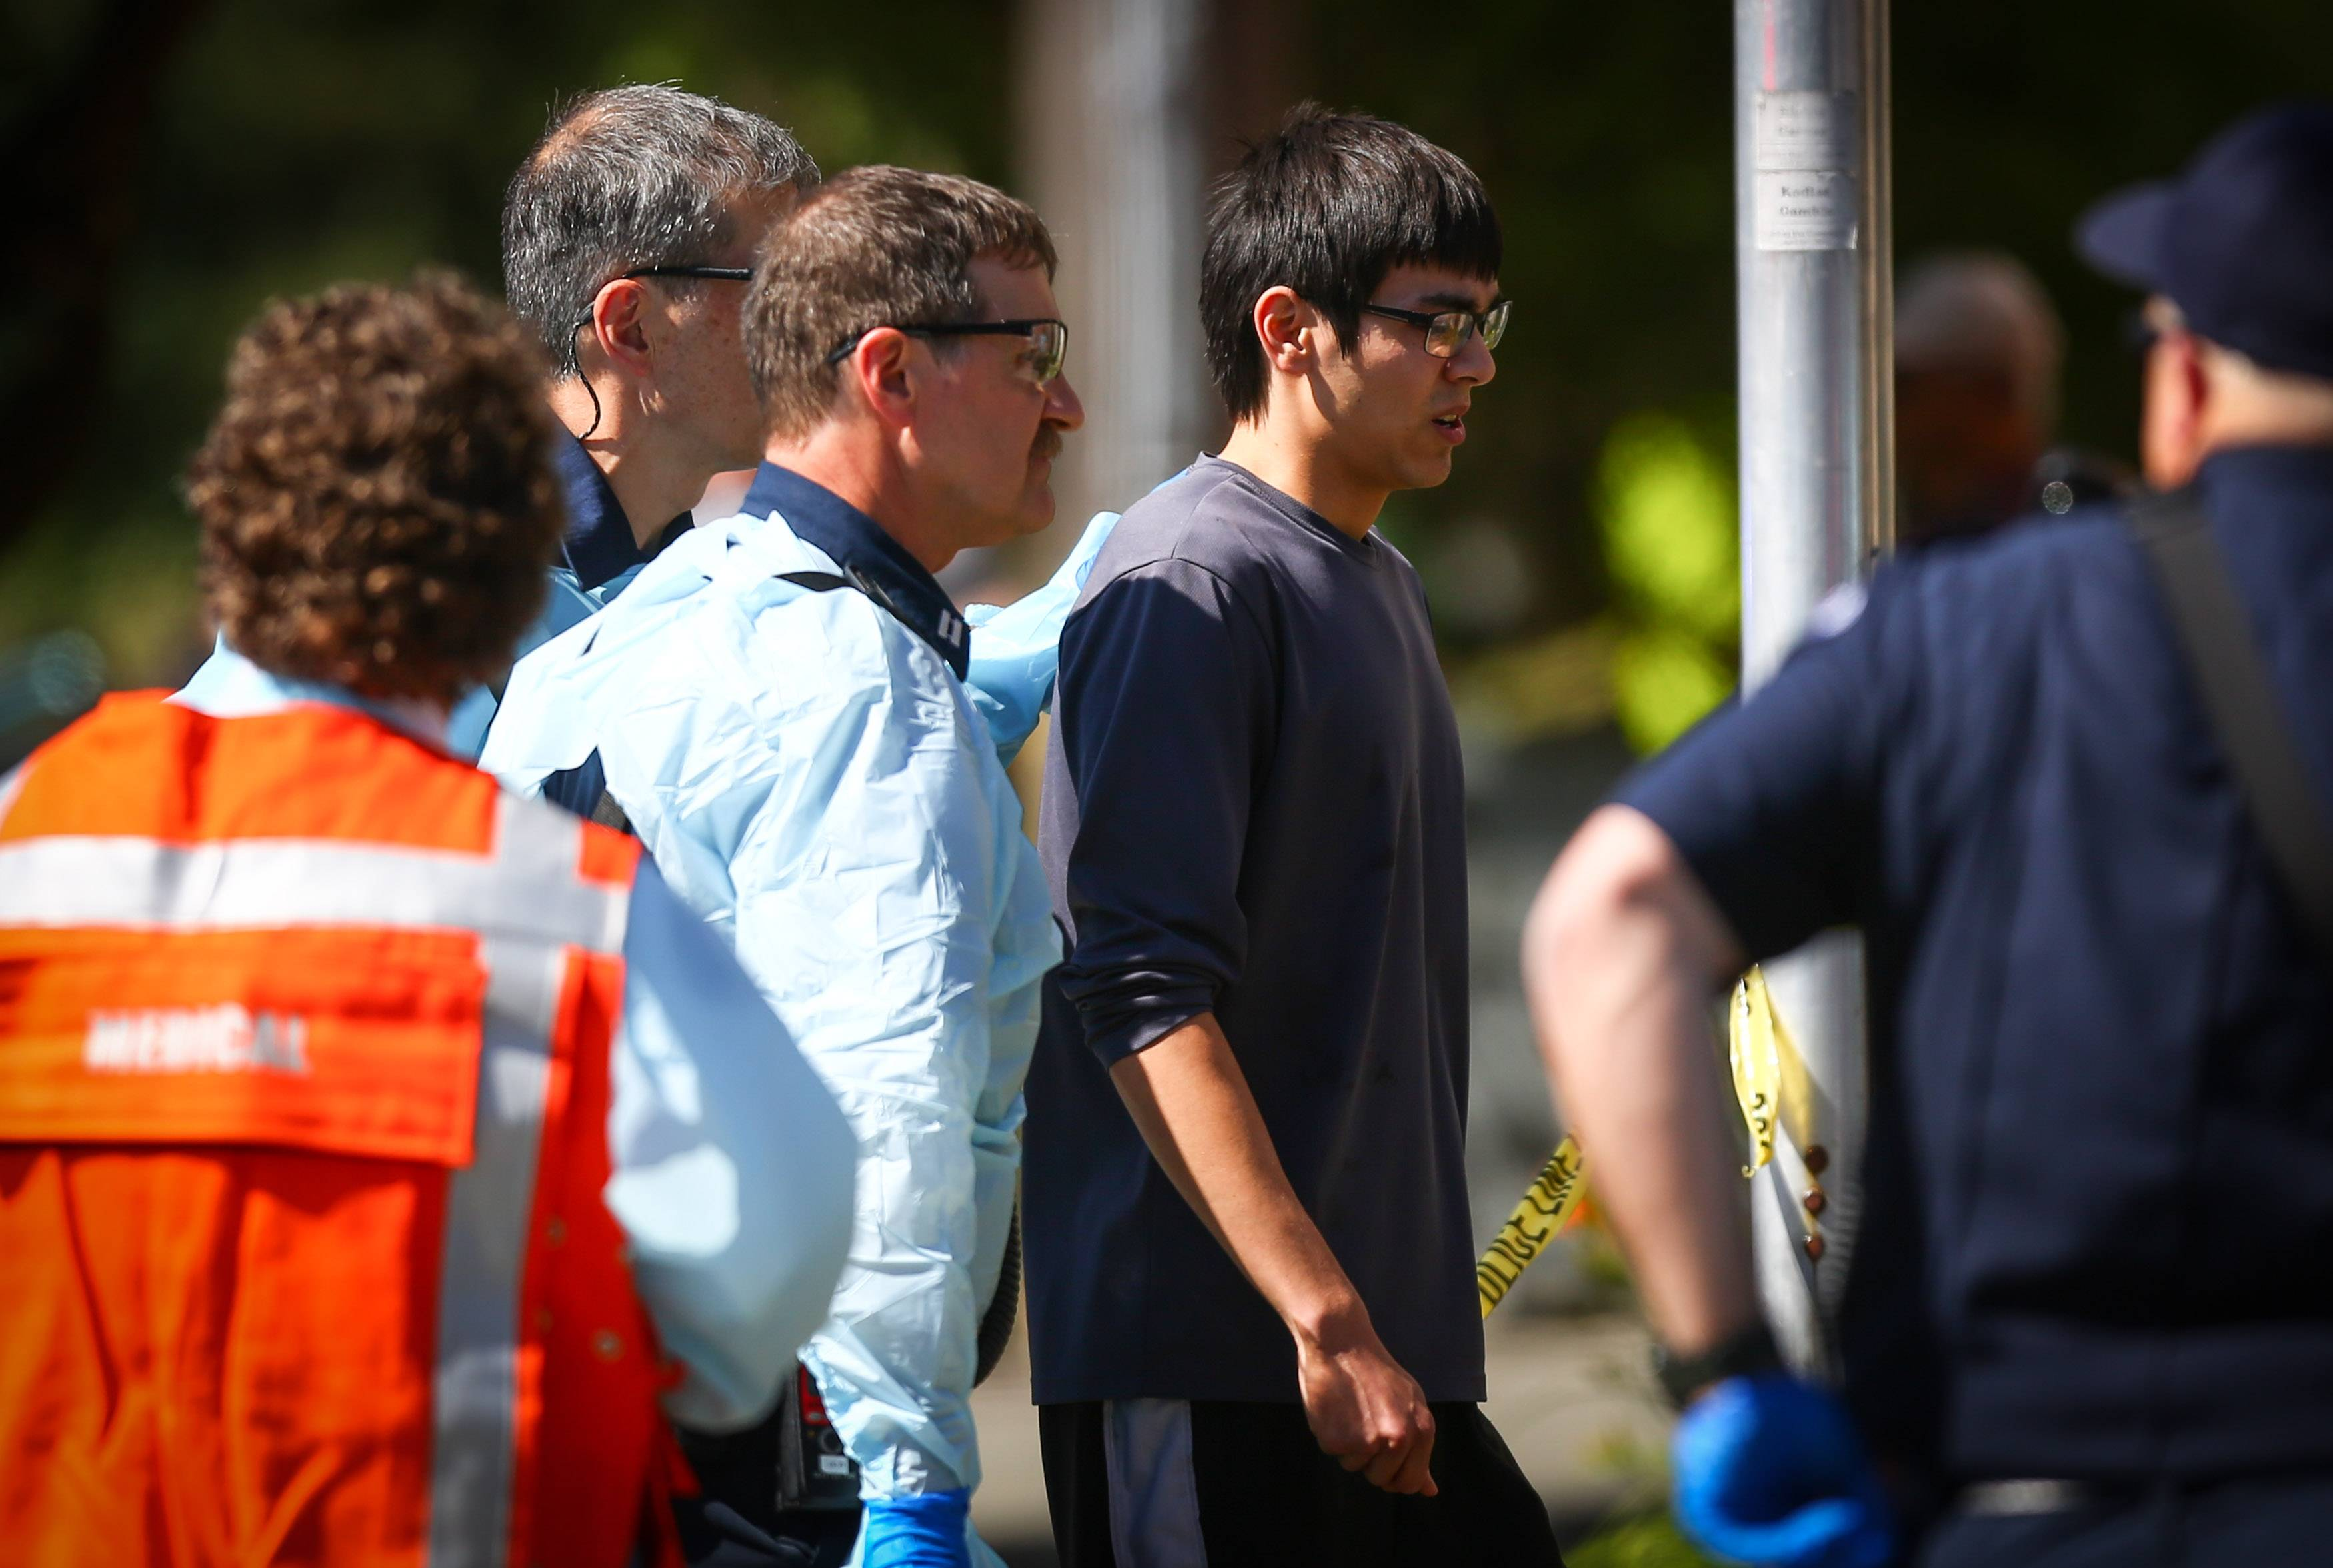 Jon Meis is taken from the scene by medics after a shooting Thursday at Seattle Pacific University.